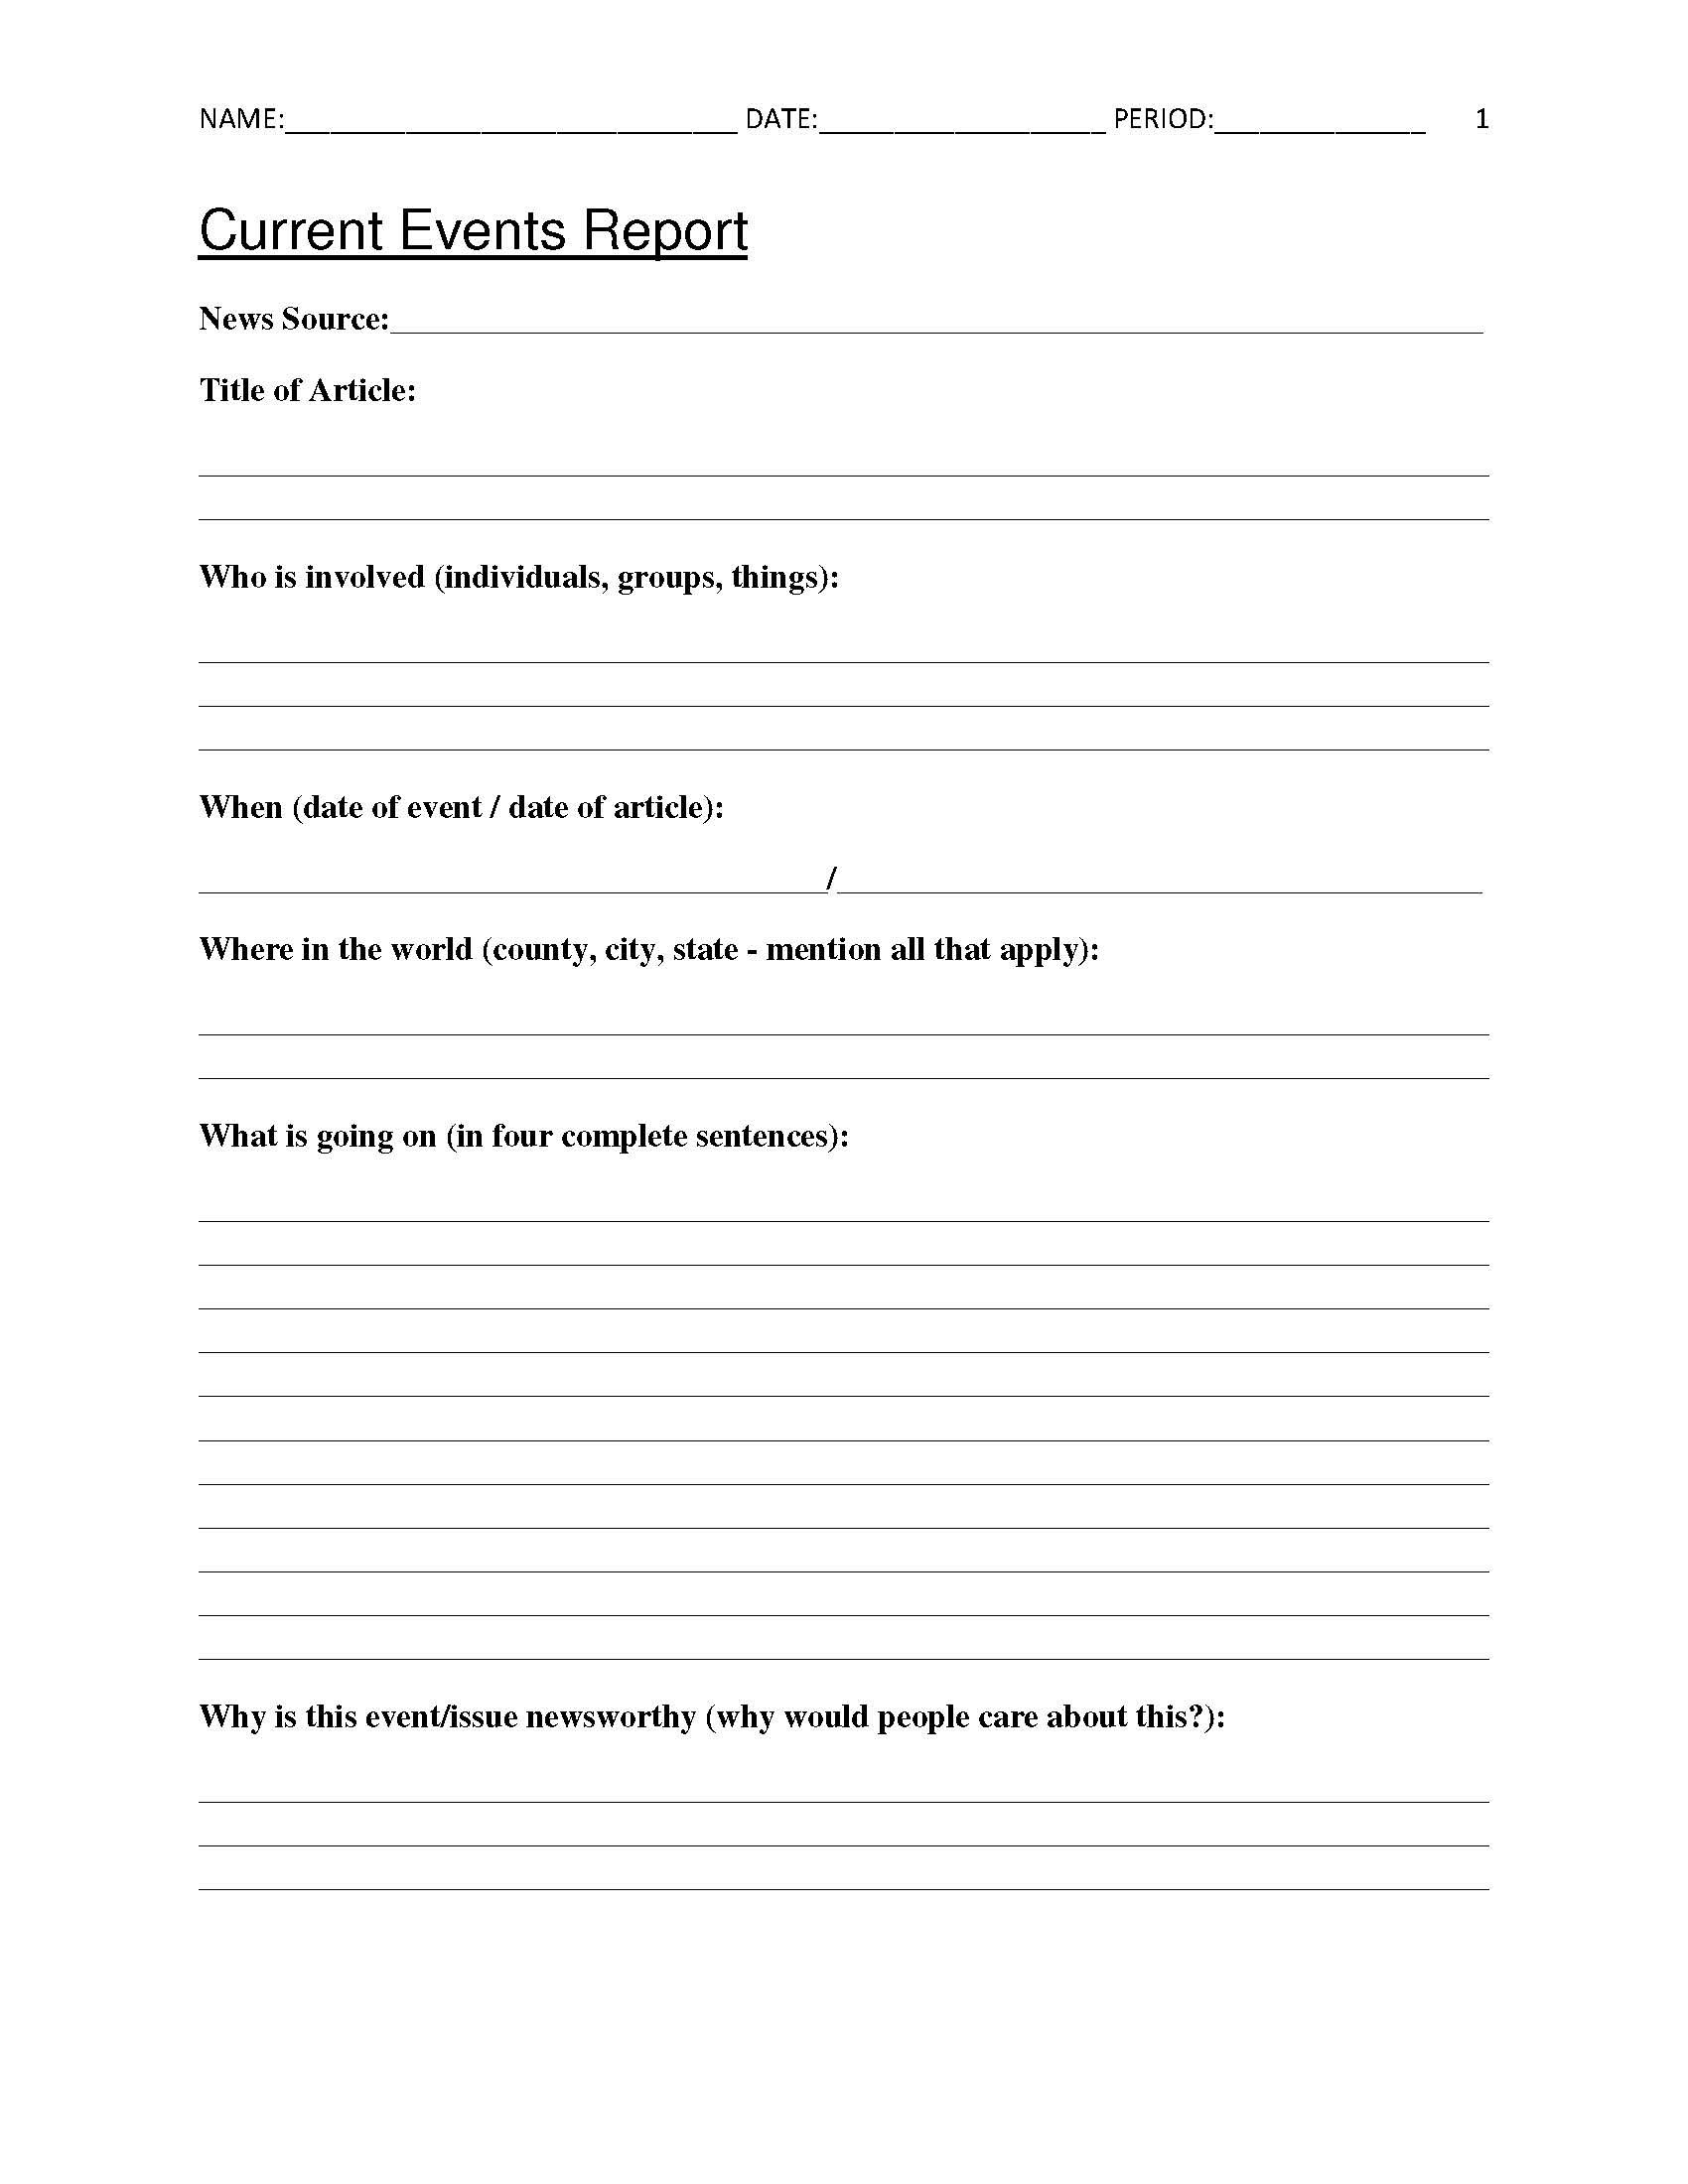 Free Current Events Report Worksheet For Classroom Teachers - Free | Free Printable 8Th Grade Social Studies Worksheets